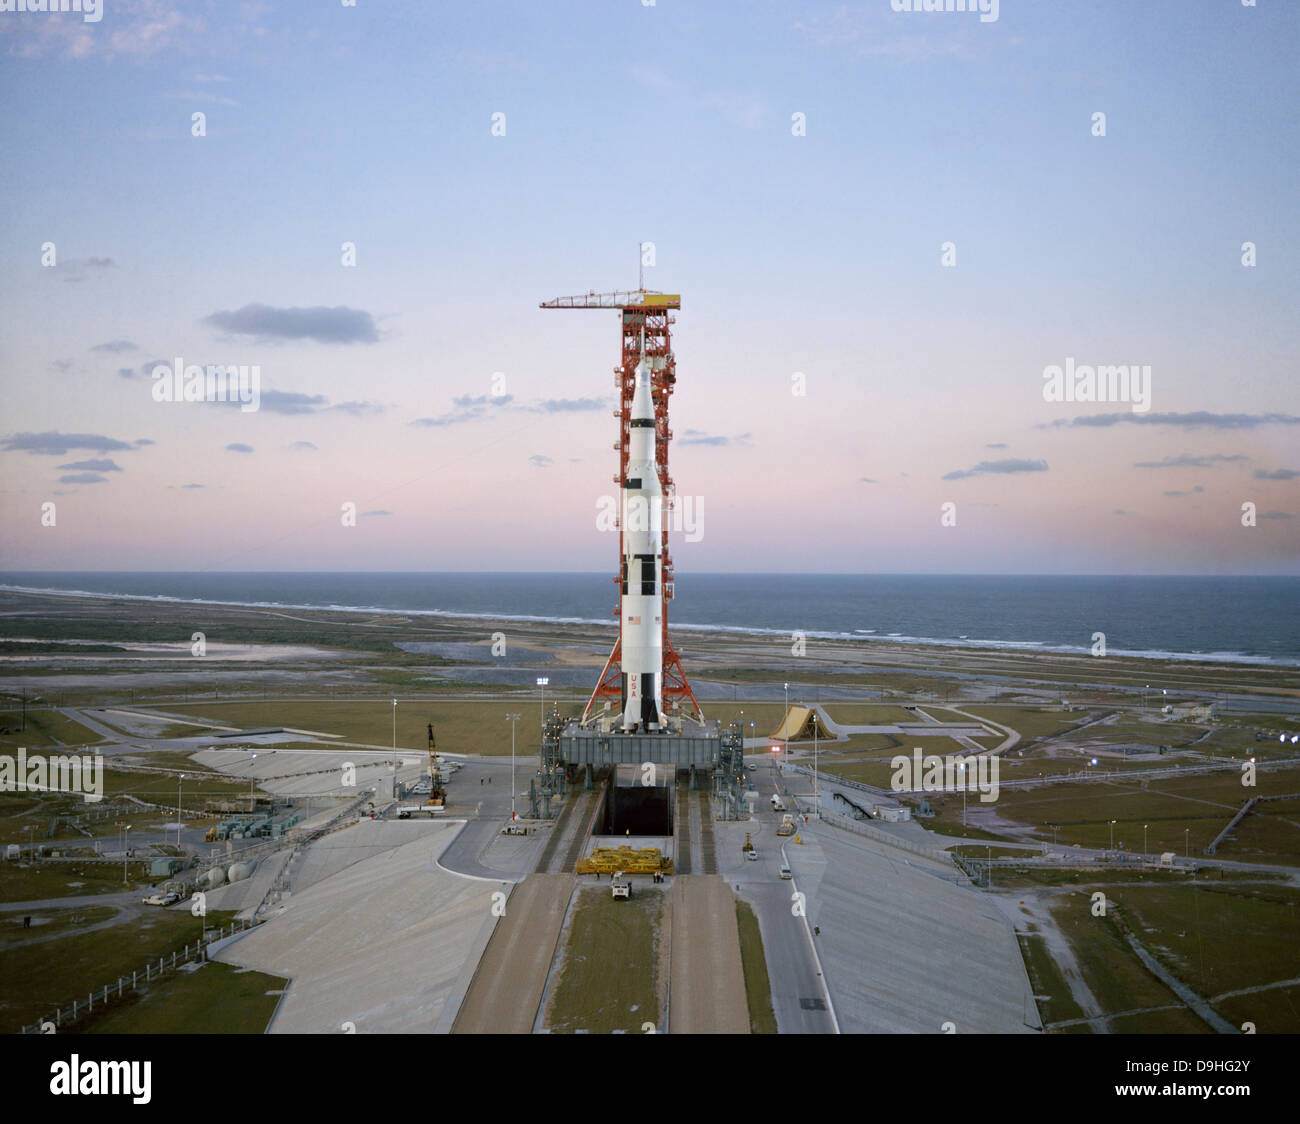 High-angle view of the Apollo 8 spacecraft on the launch pad. - Stock Image